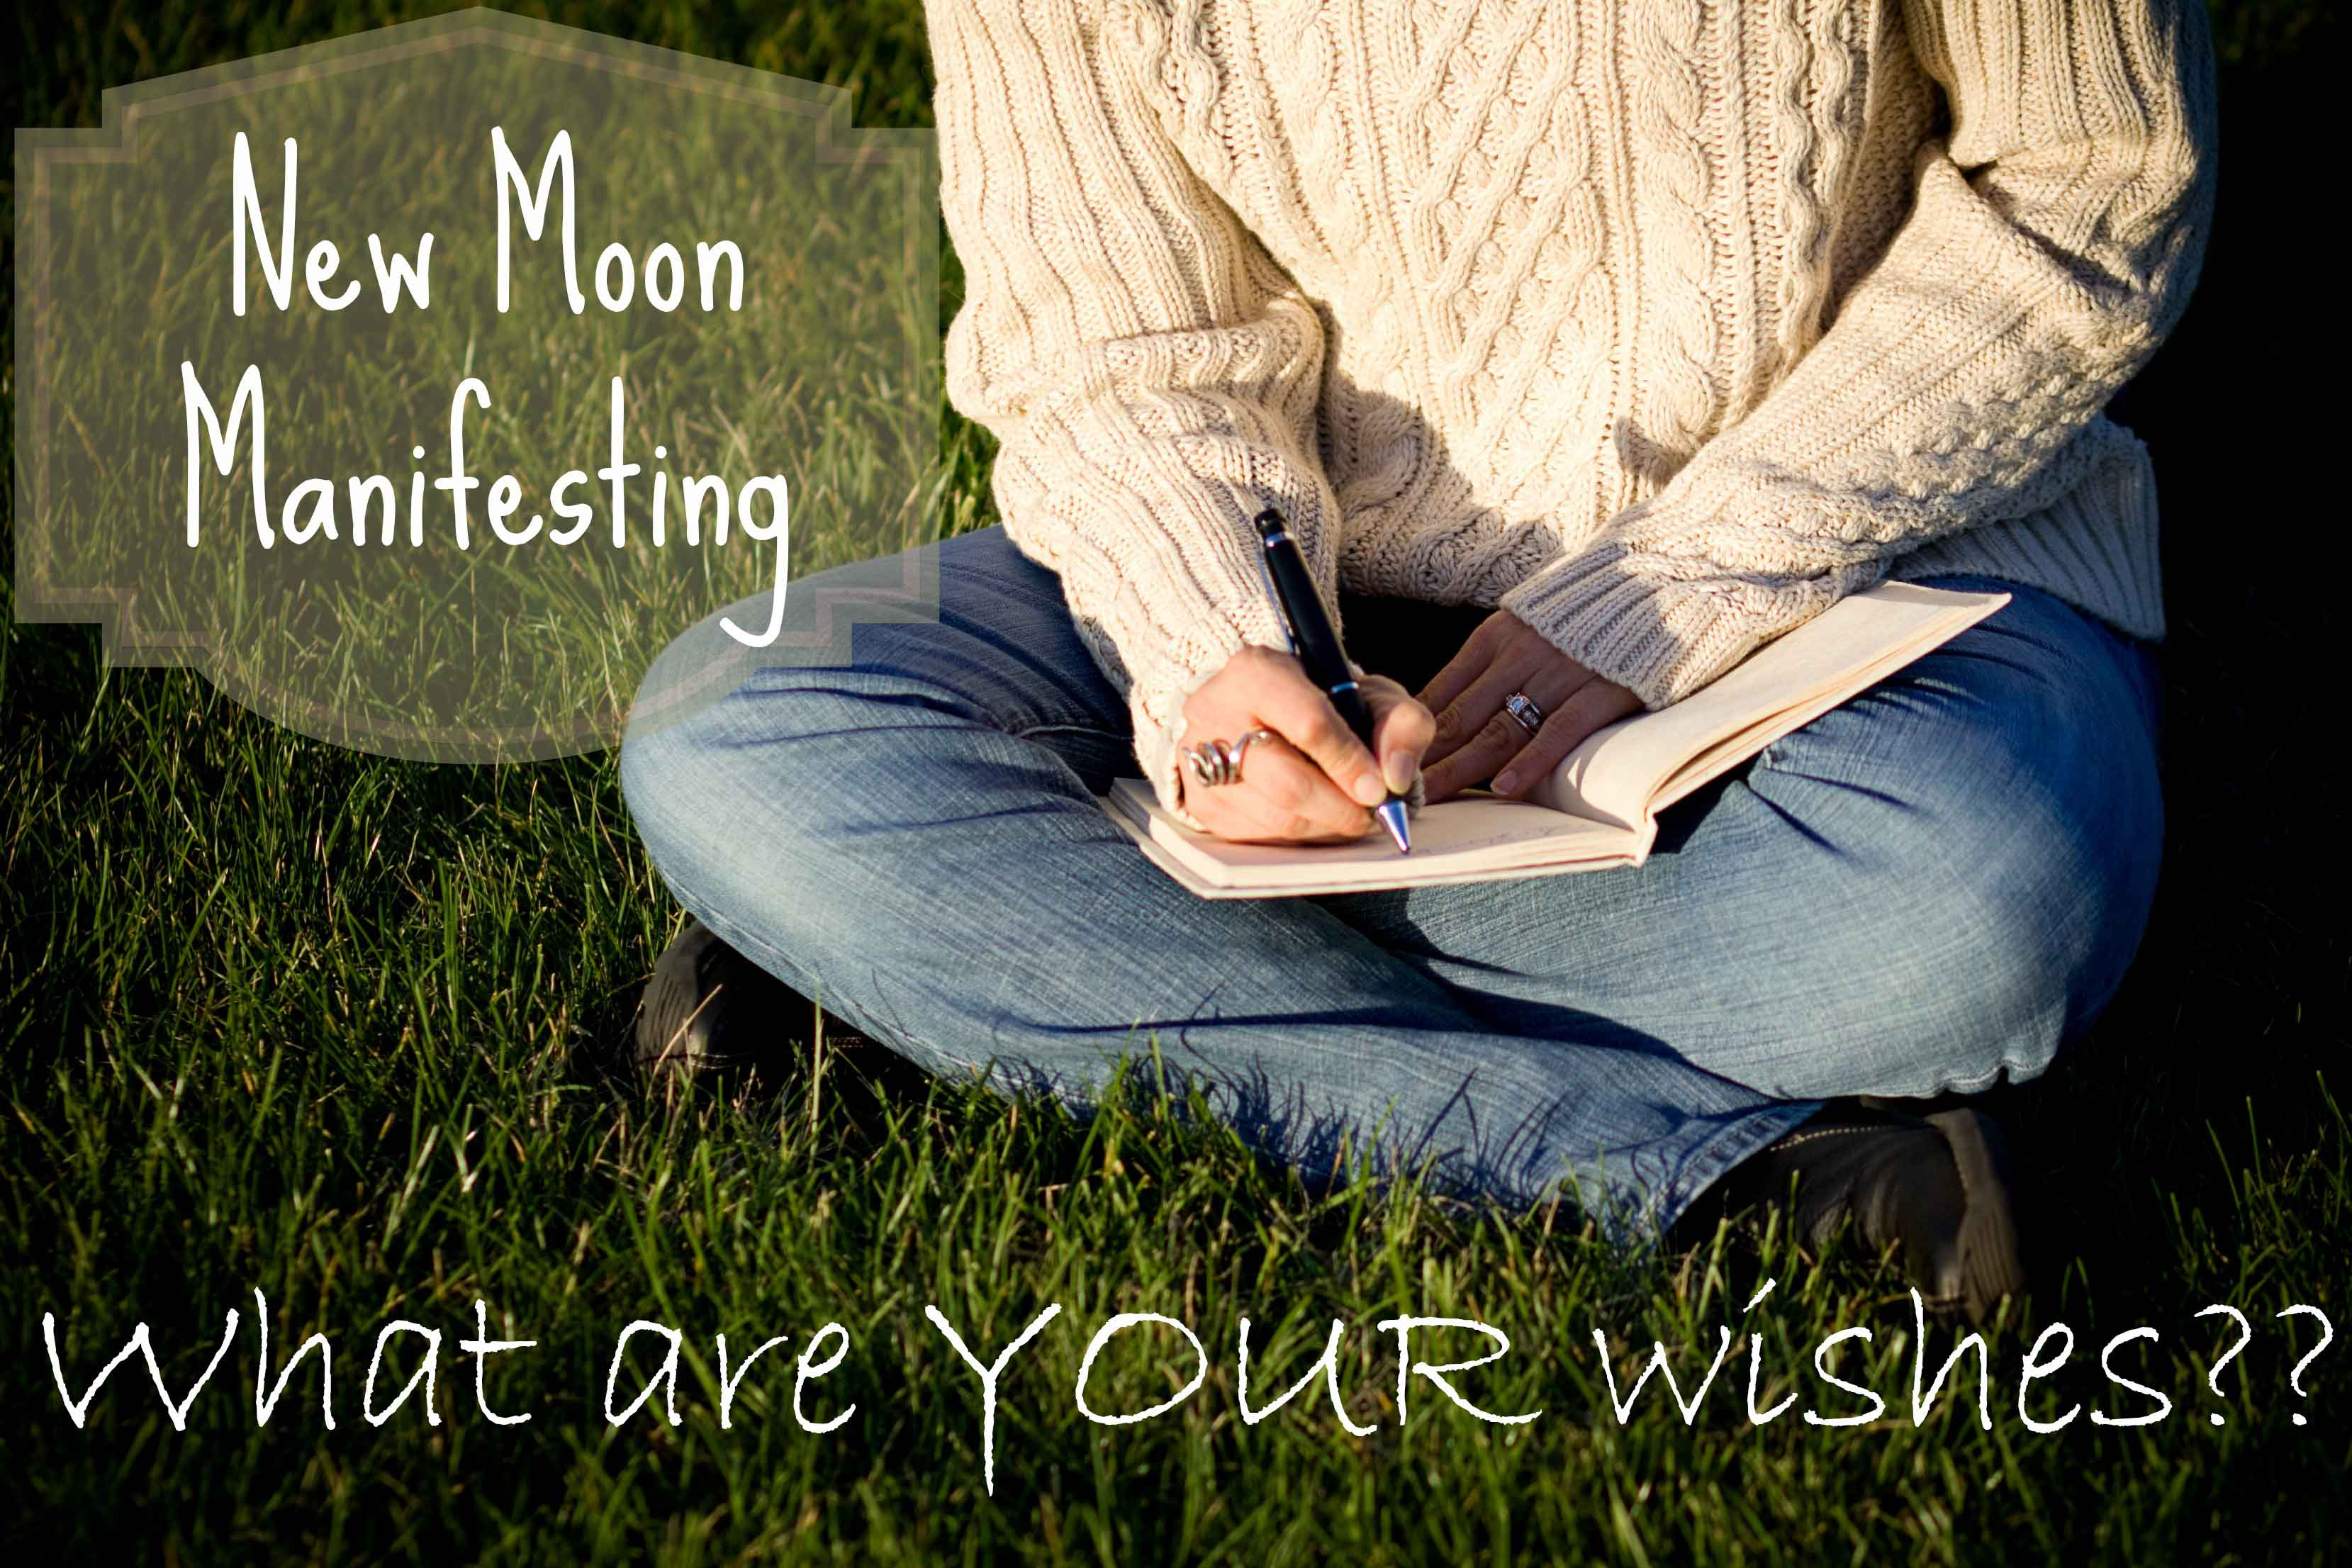 A Life Coaching Moment: Manifesting by the Phase of the Moon